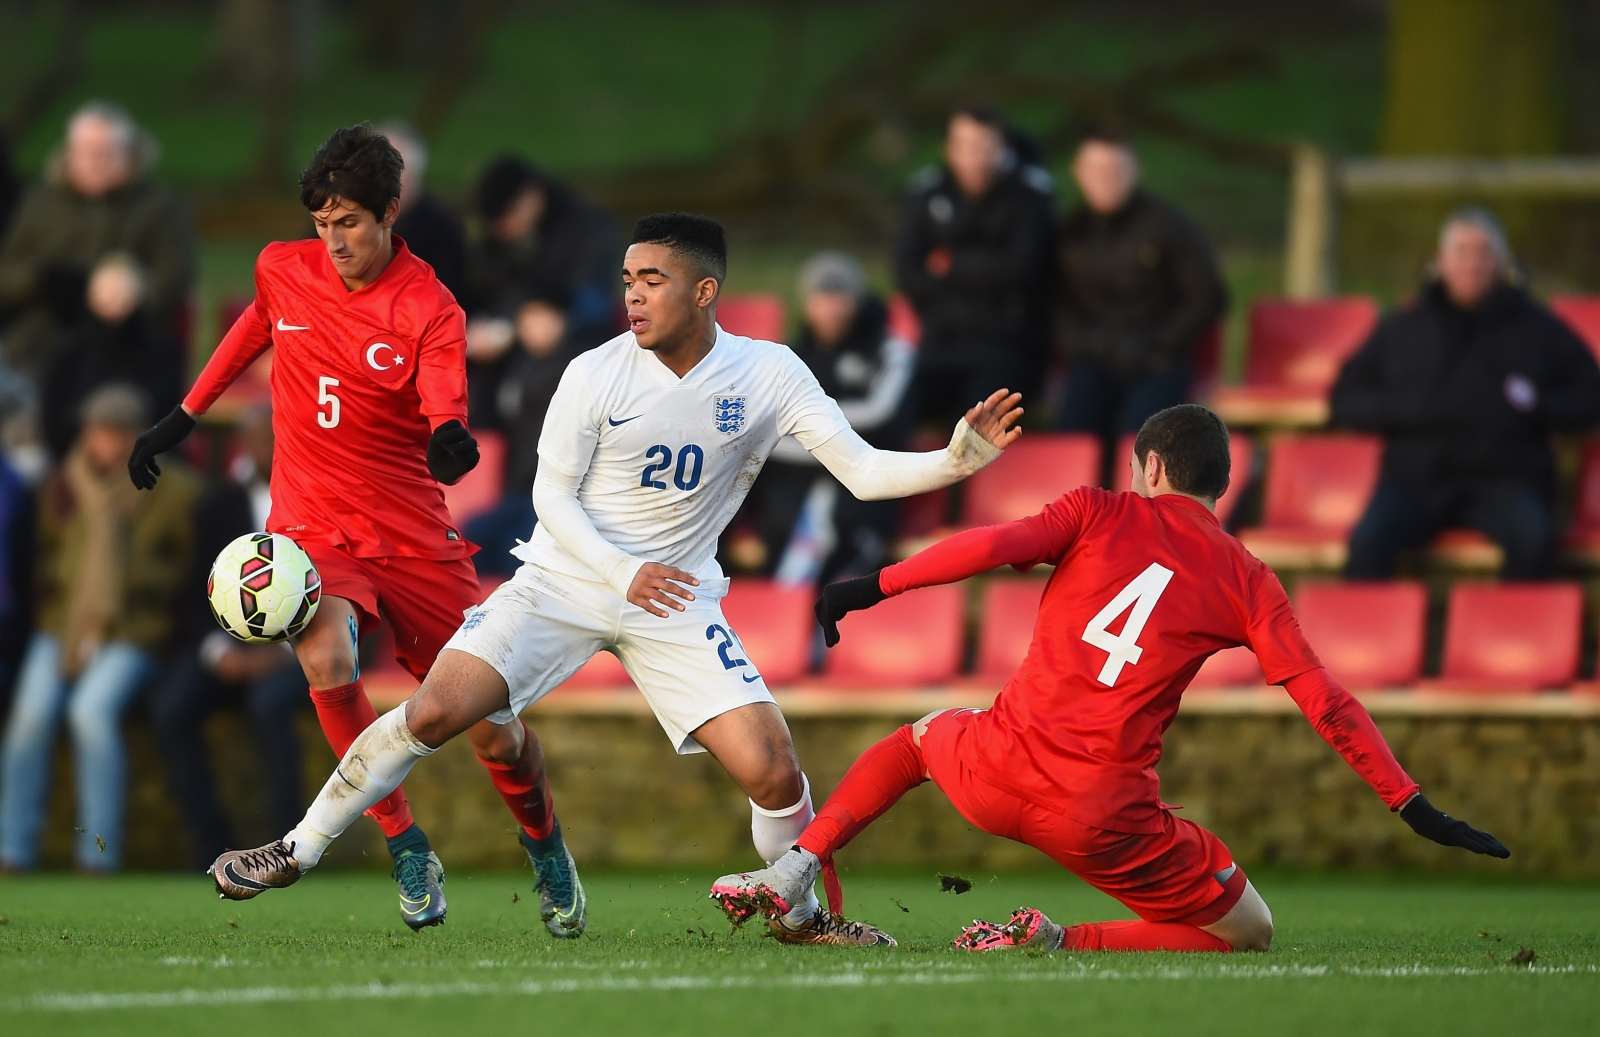 Arsenal youngster Trae Coyle signs first professional